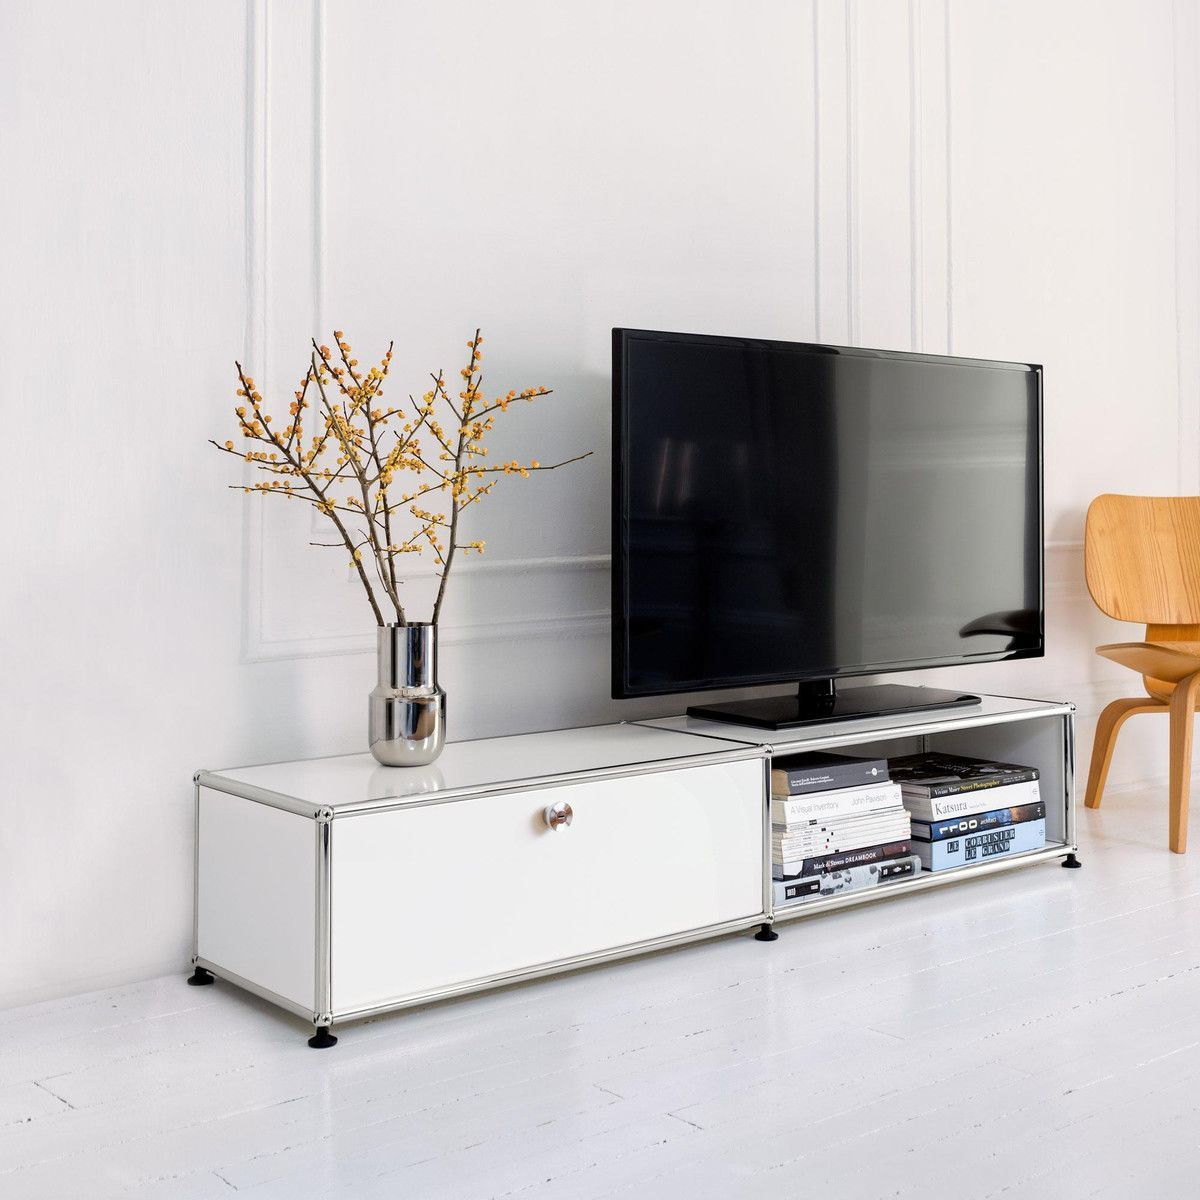 Usm Tv Hi Fi Sideboard H 29cm Usm Haller Ambientedirect Com # Meuble Tv Usm Haller